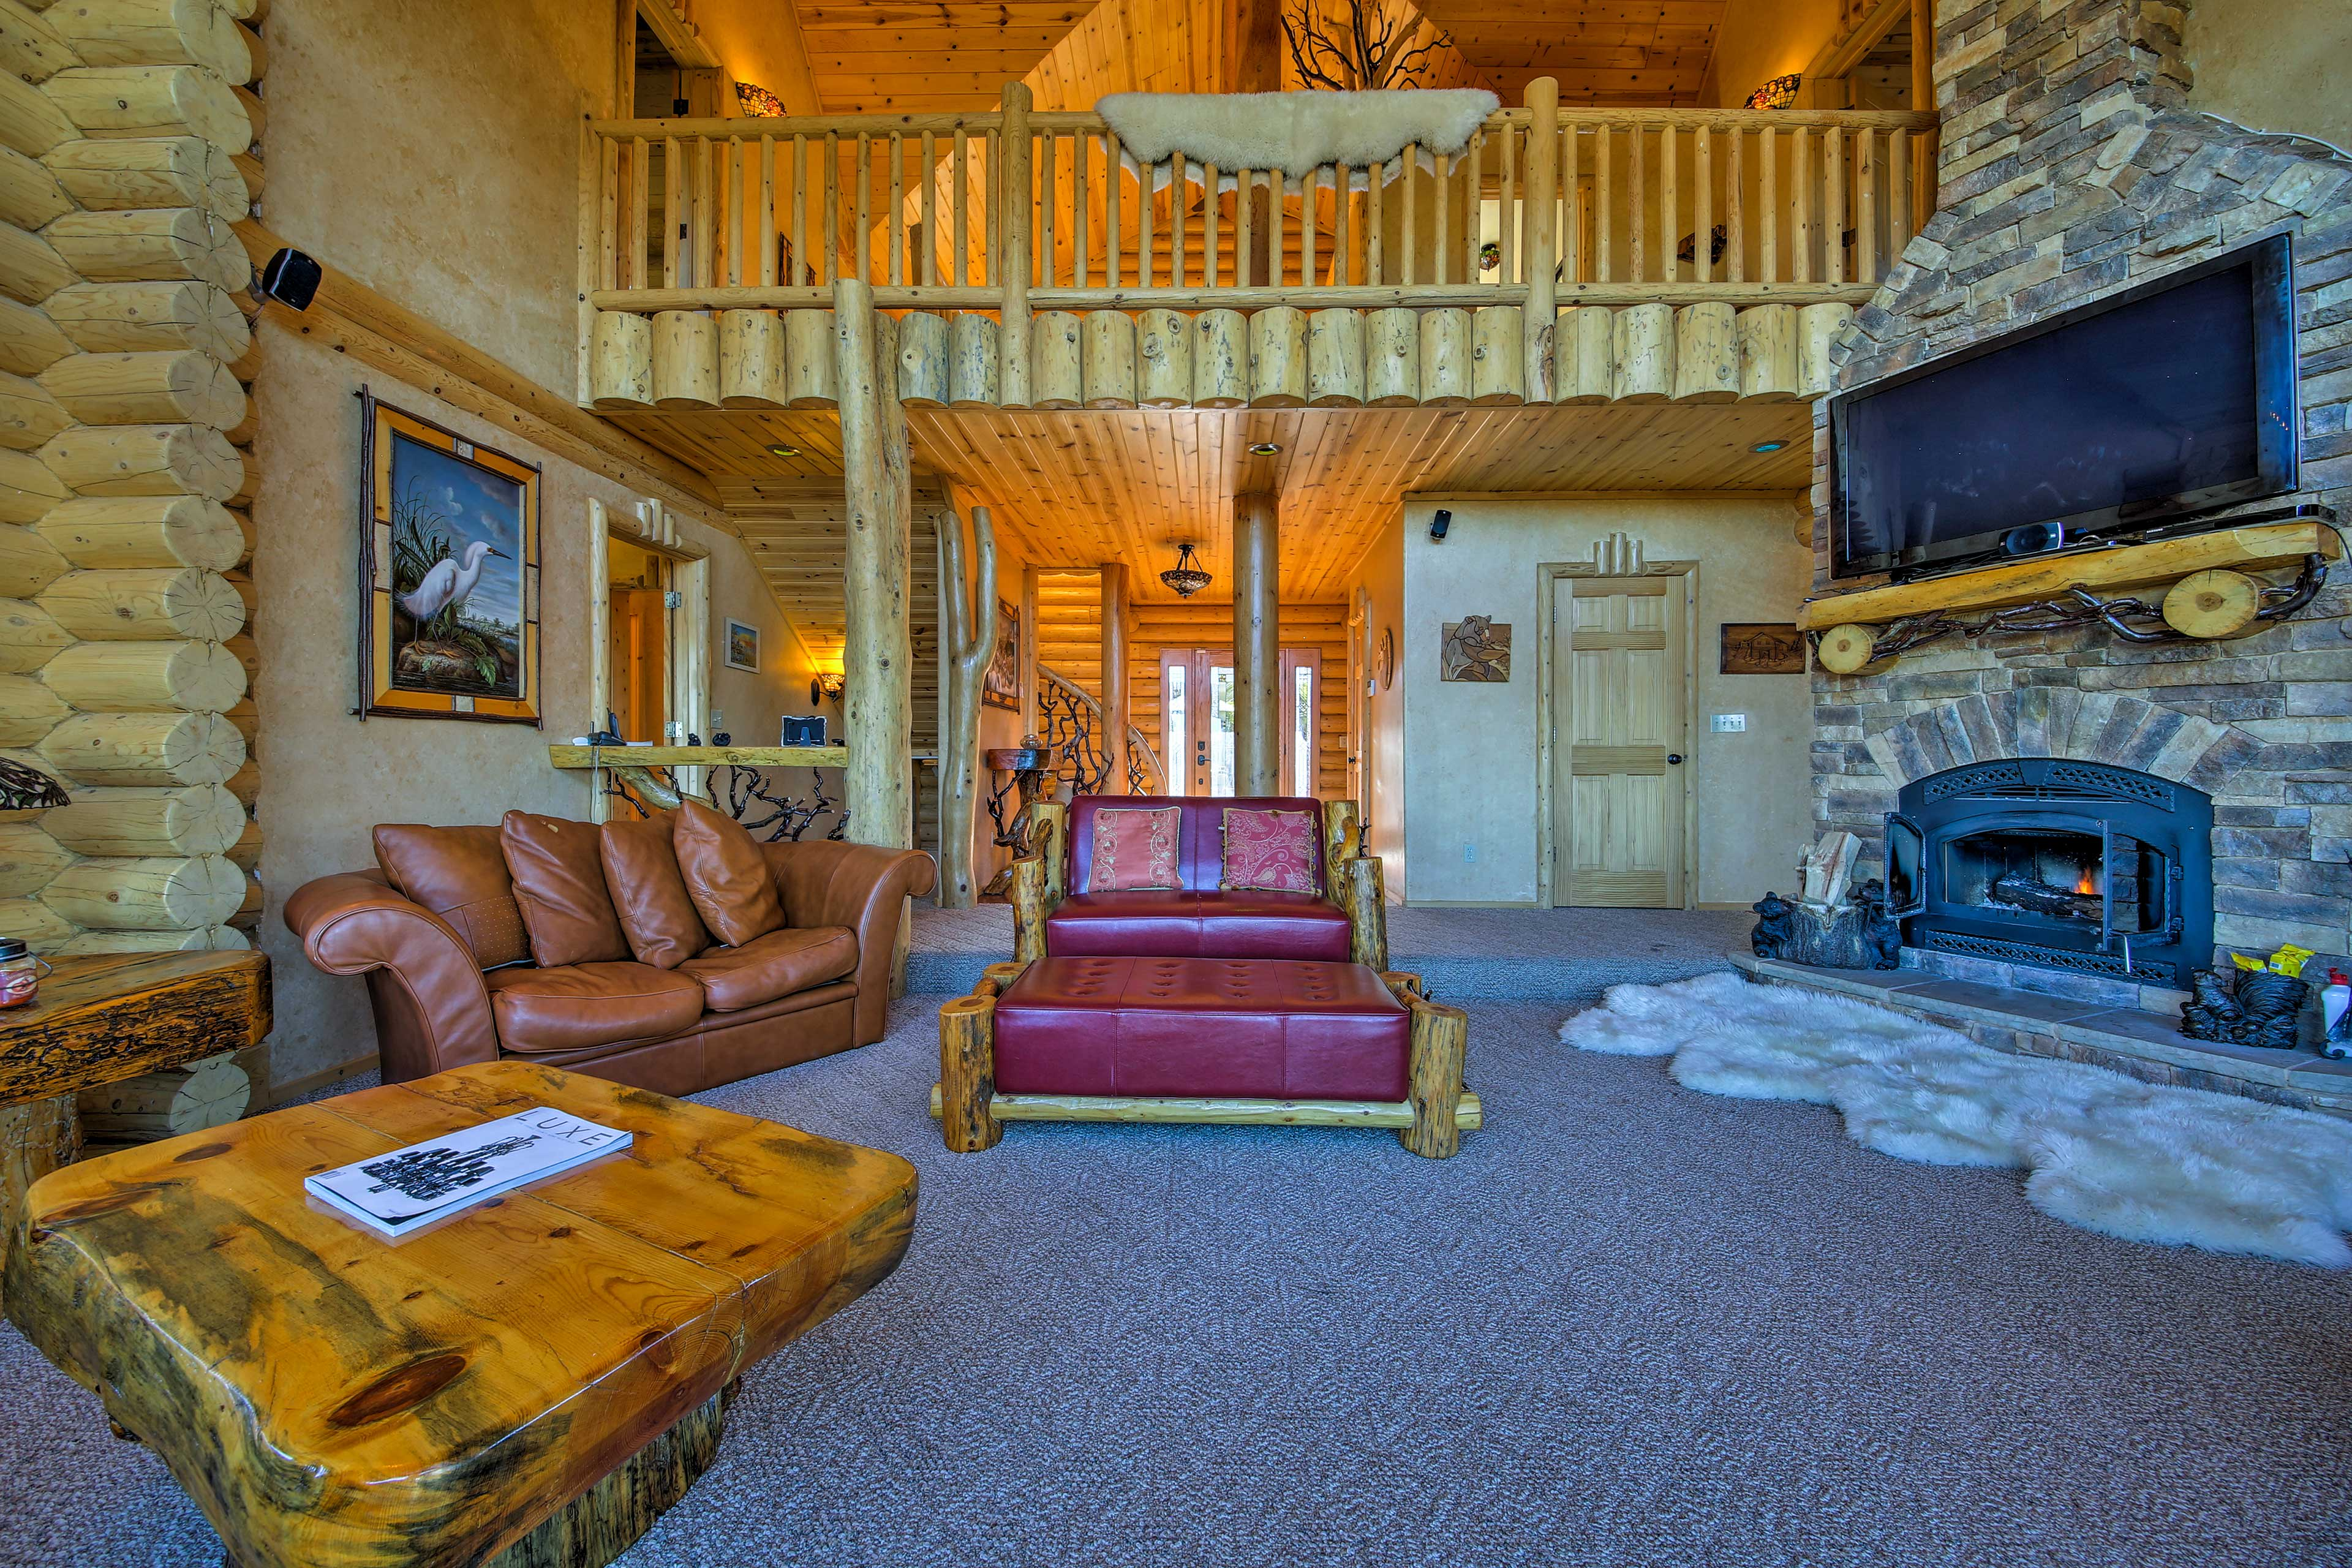 The interior features vaulted ceilings and is decorated with custom furniture.